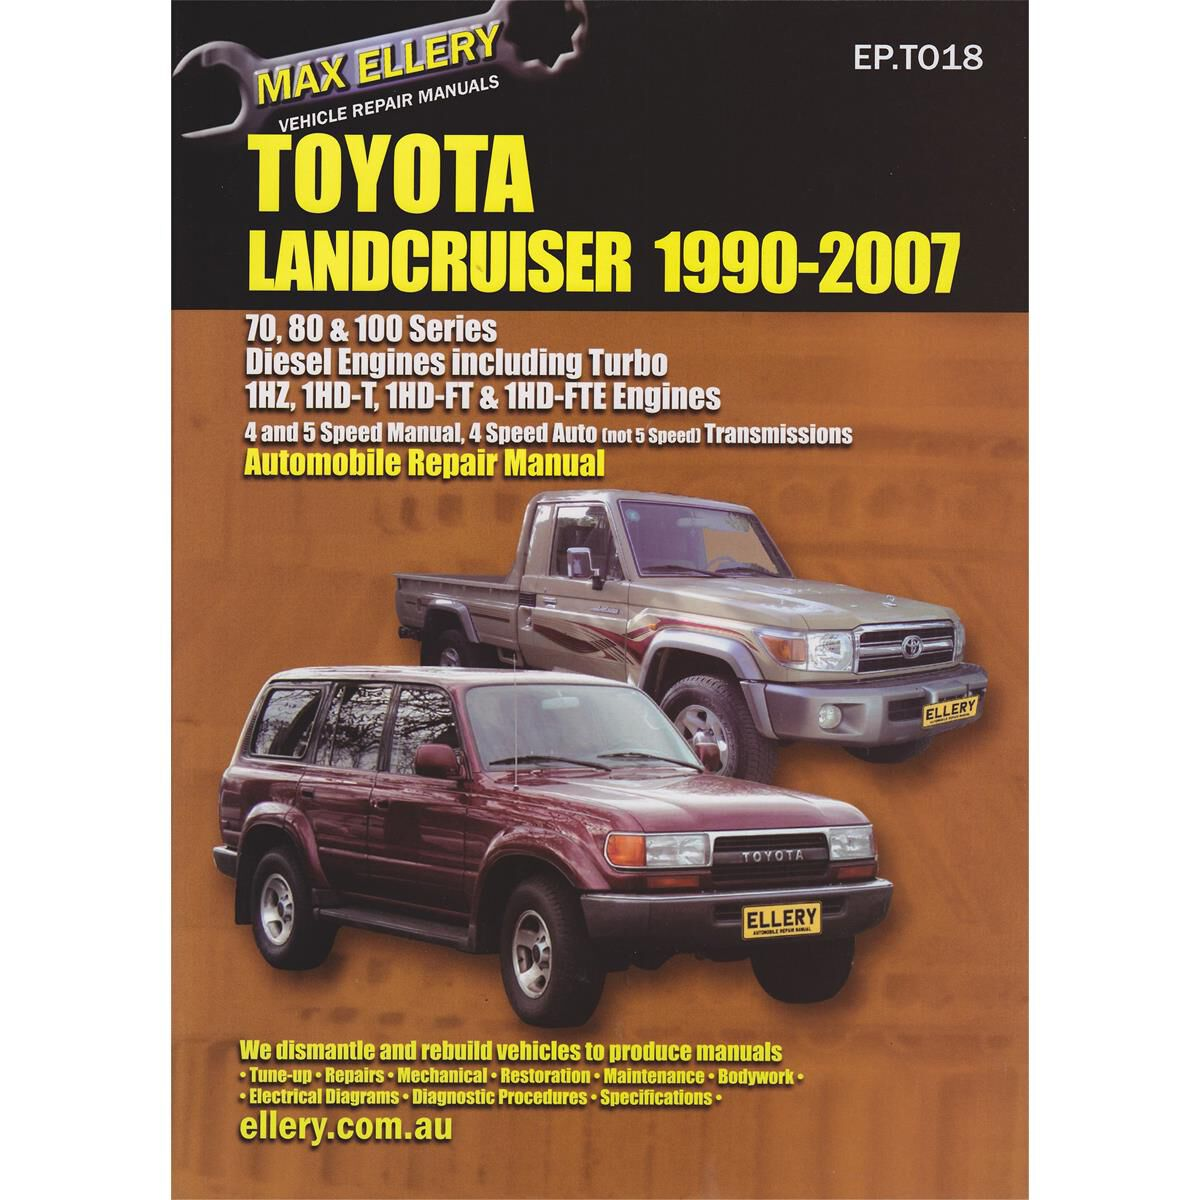 car manual for toyota landcruiser 1990 2007 ep t018 supercheap auto rh supercheapauto com au